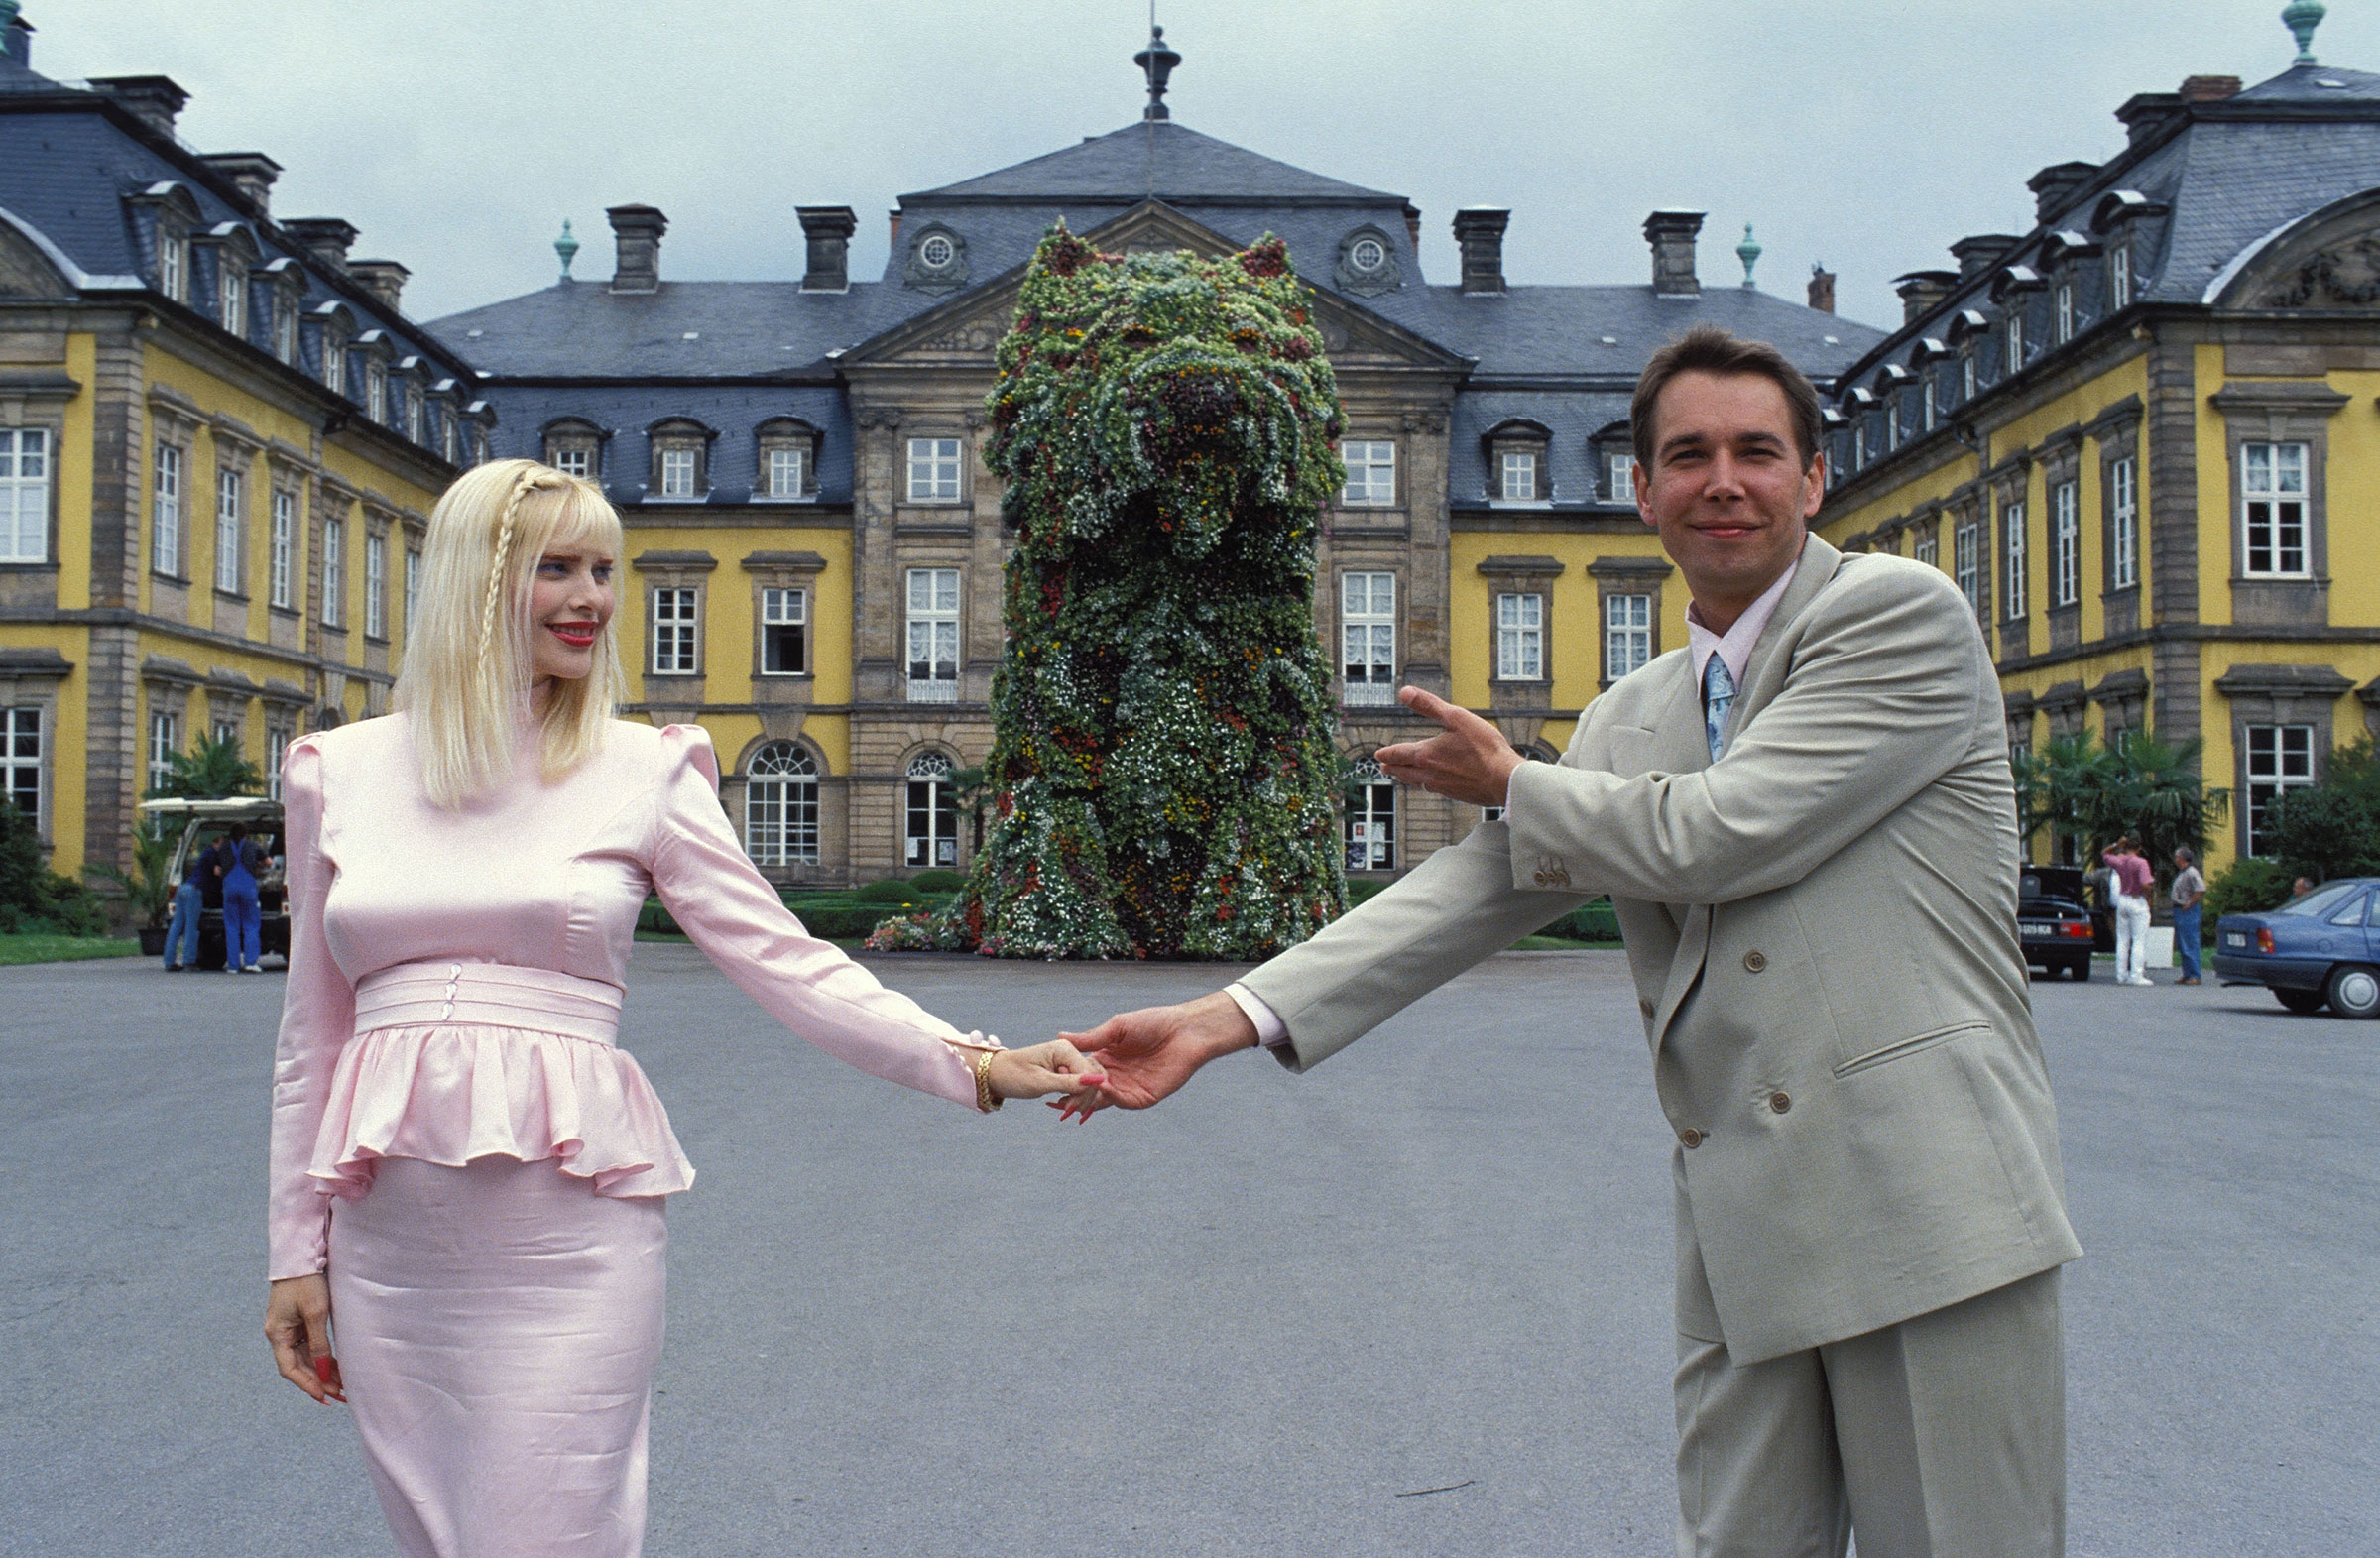 Artist Jeff Koons and actress llona Staller in Bad Arolsen, Germany, June 1992. Kroll was hired to investigate Staller during the couple's divorce in the 1990s.